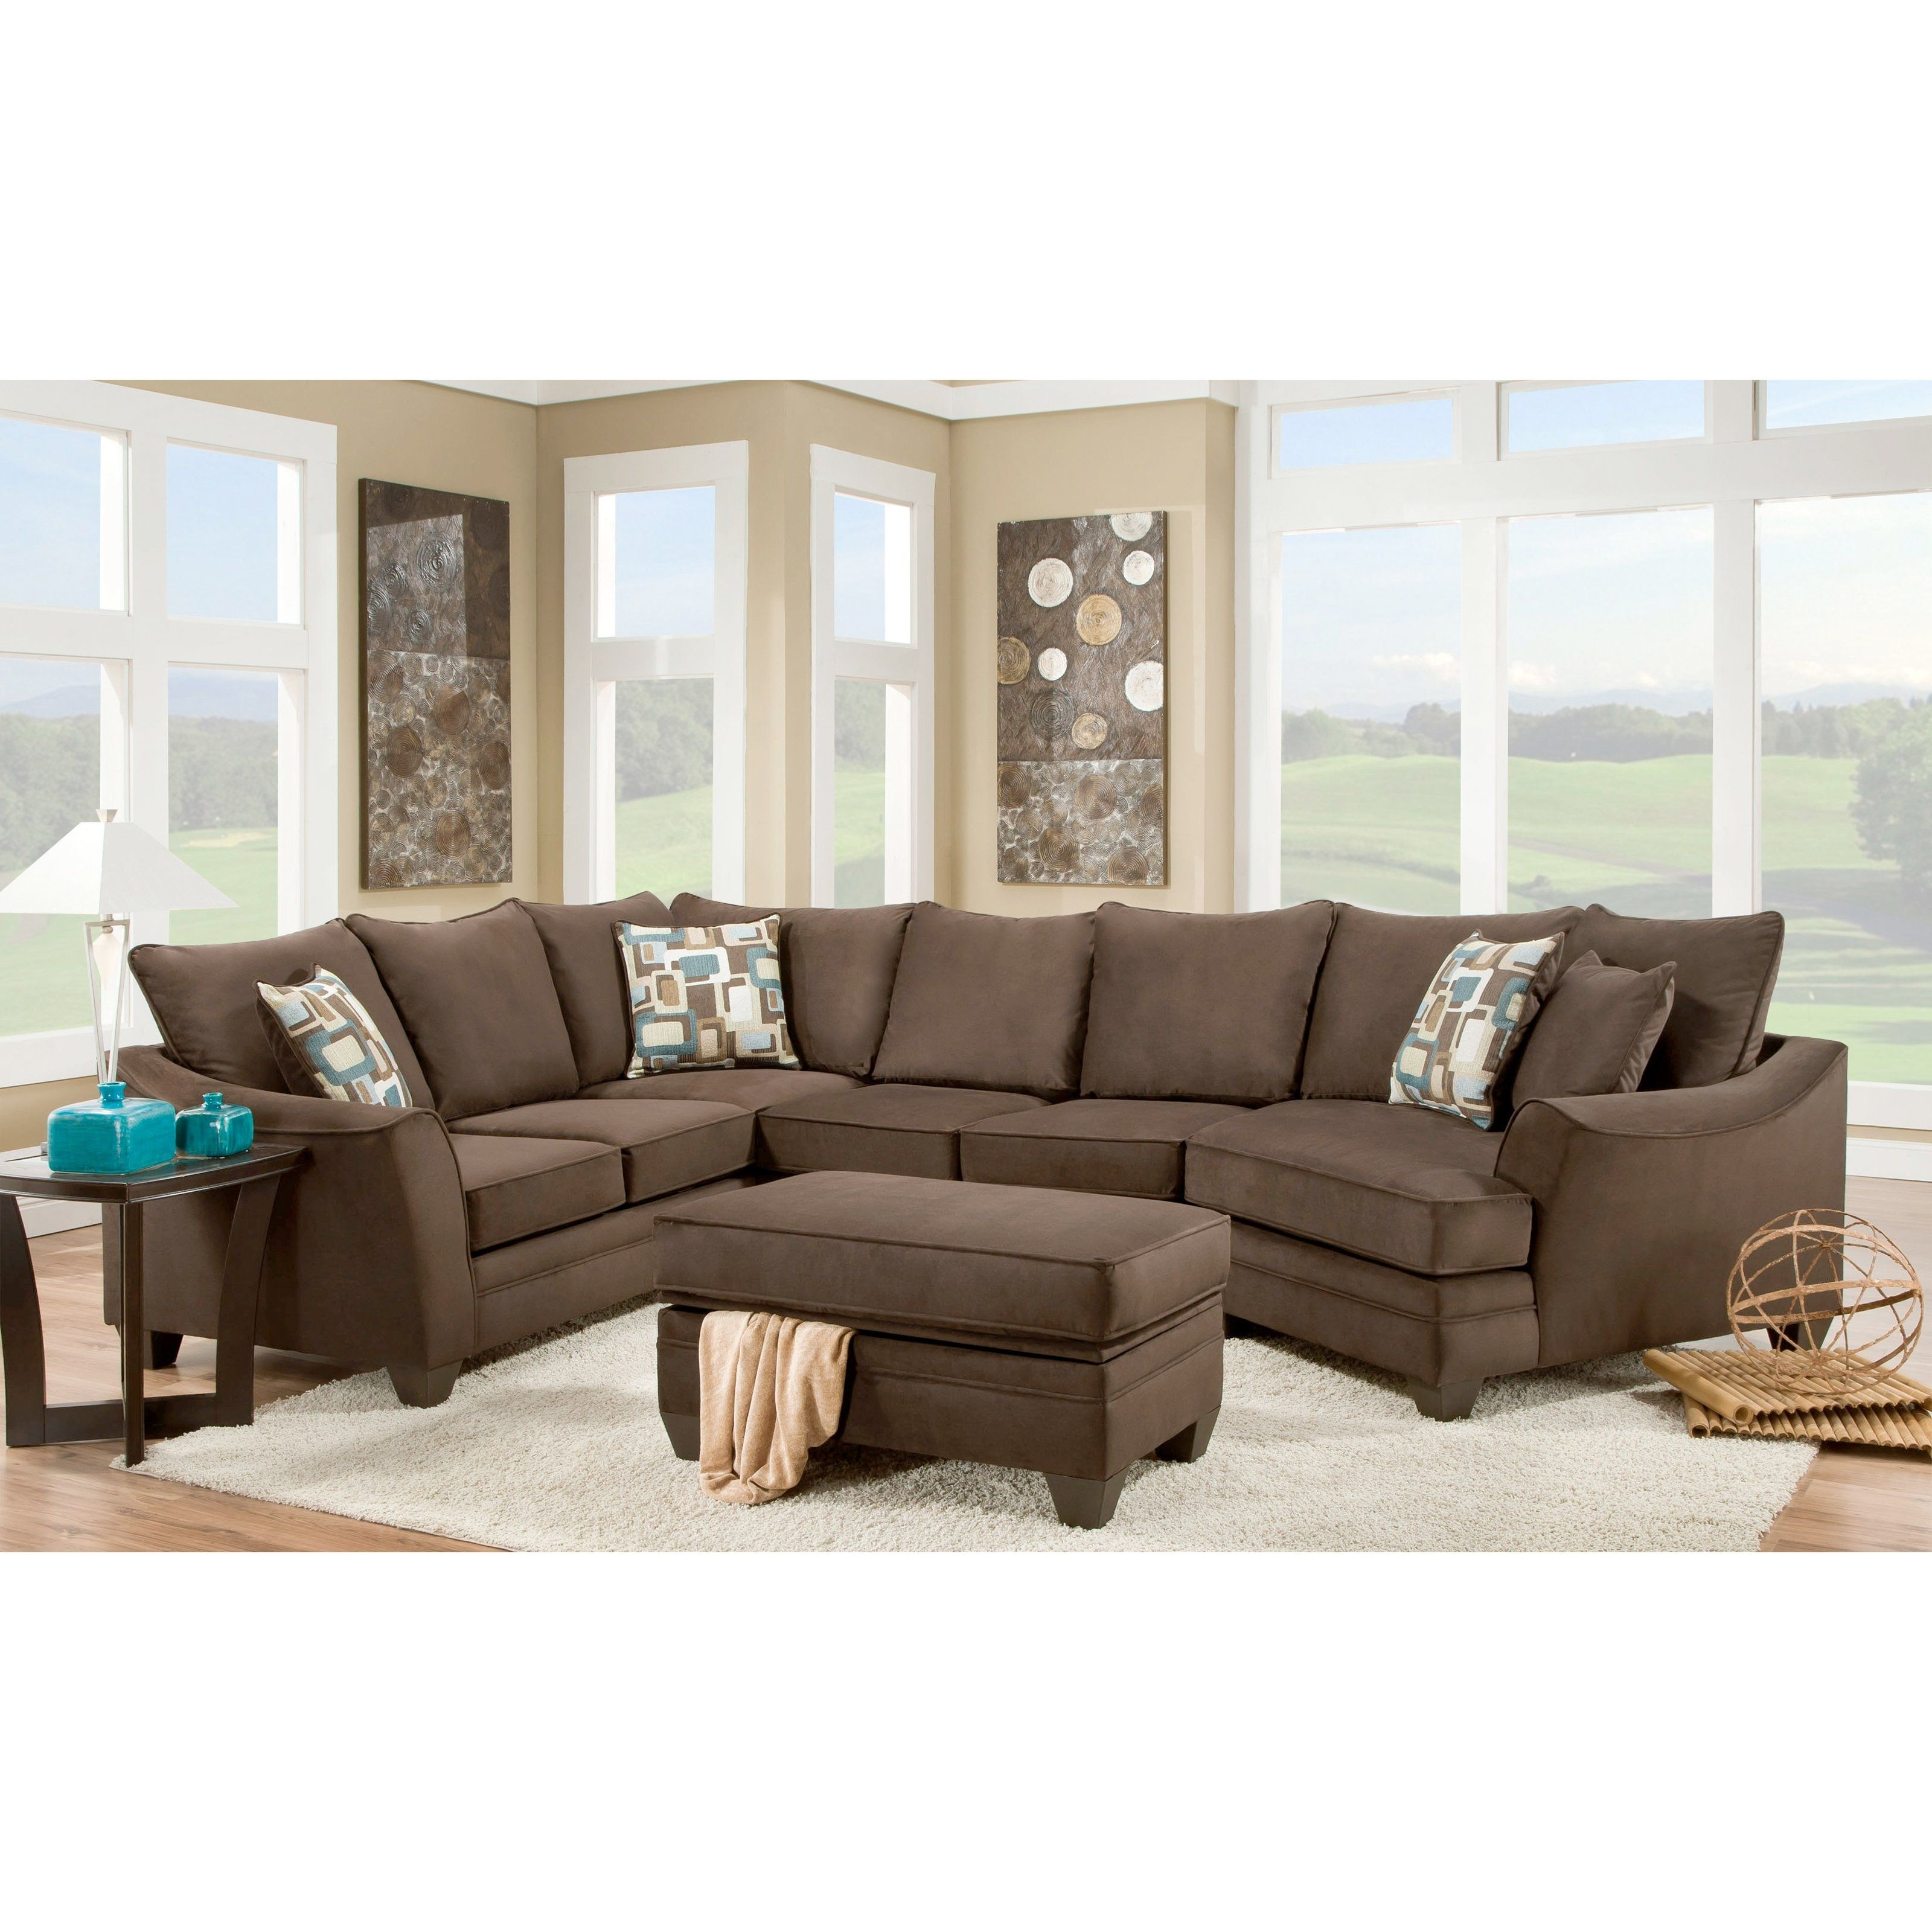 Sectional Sofas in Greensboro Nc | Design Concepts by Inspirational ...